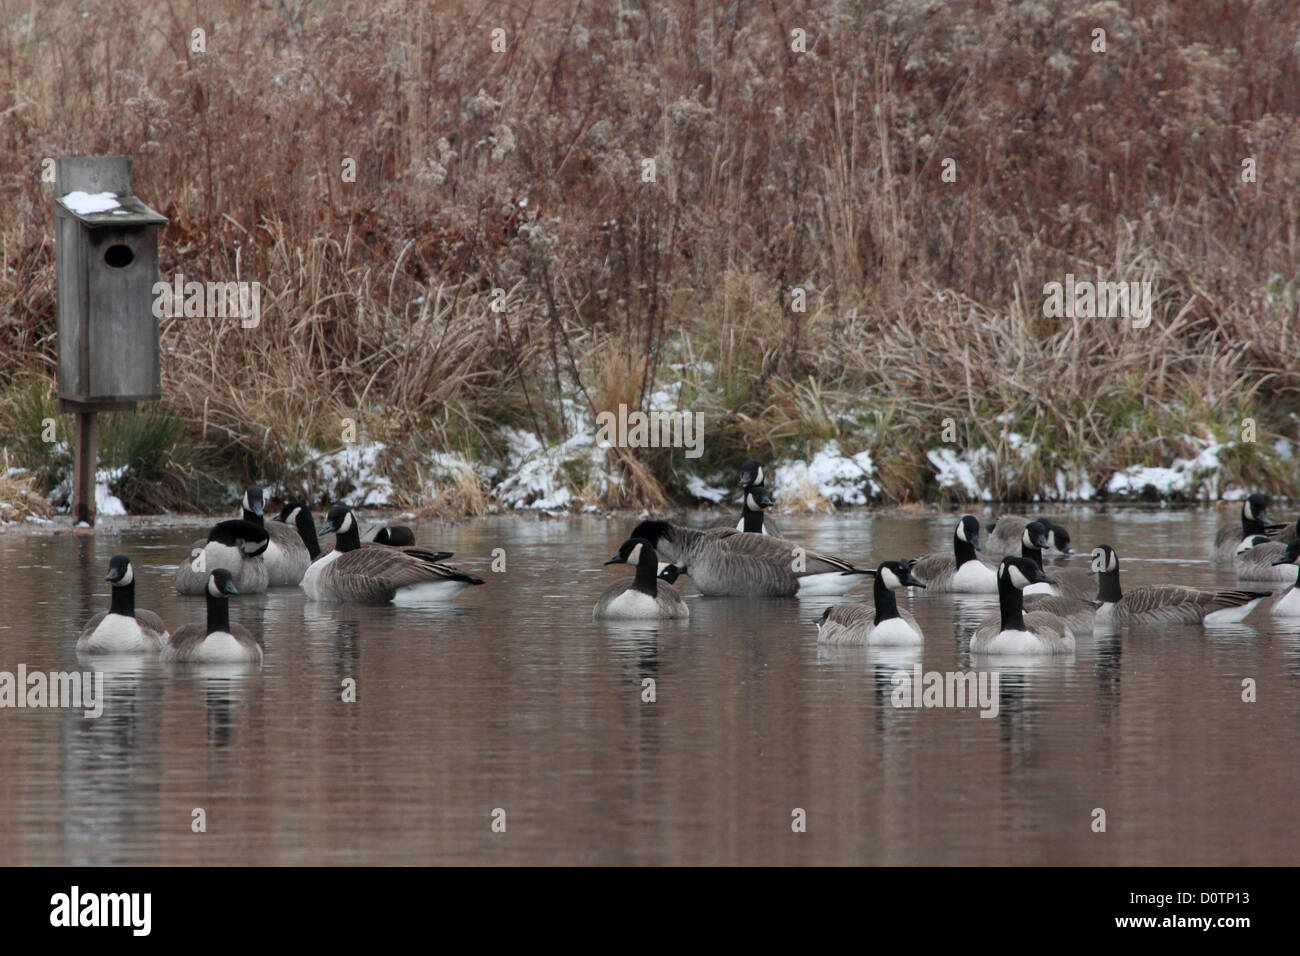 A flock of Canada geese laze on a pond in front of a wood duck box. - Stock Image